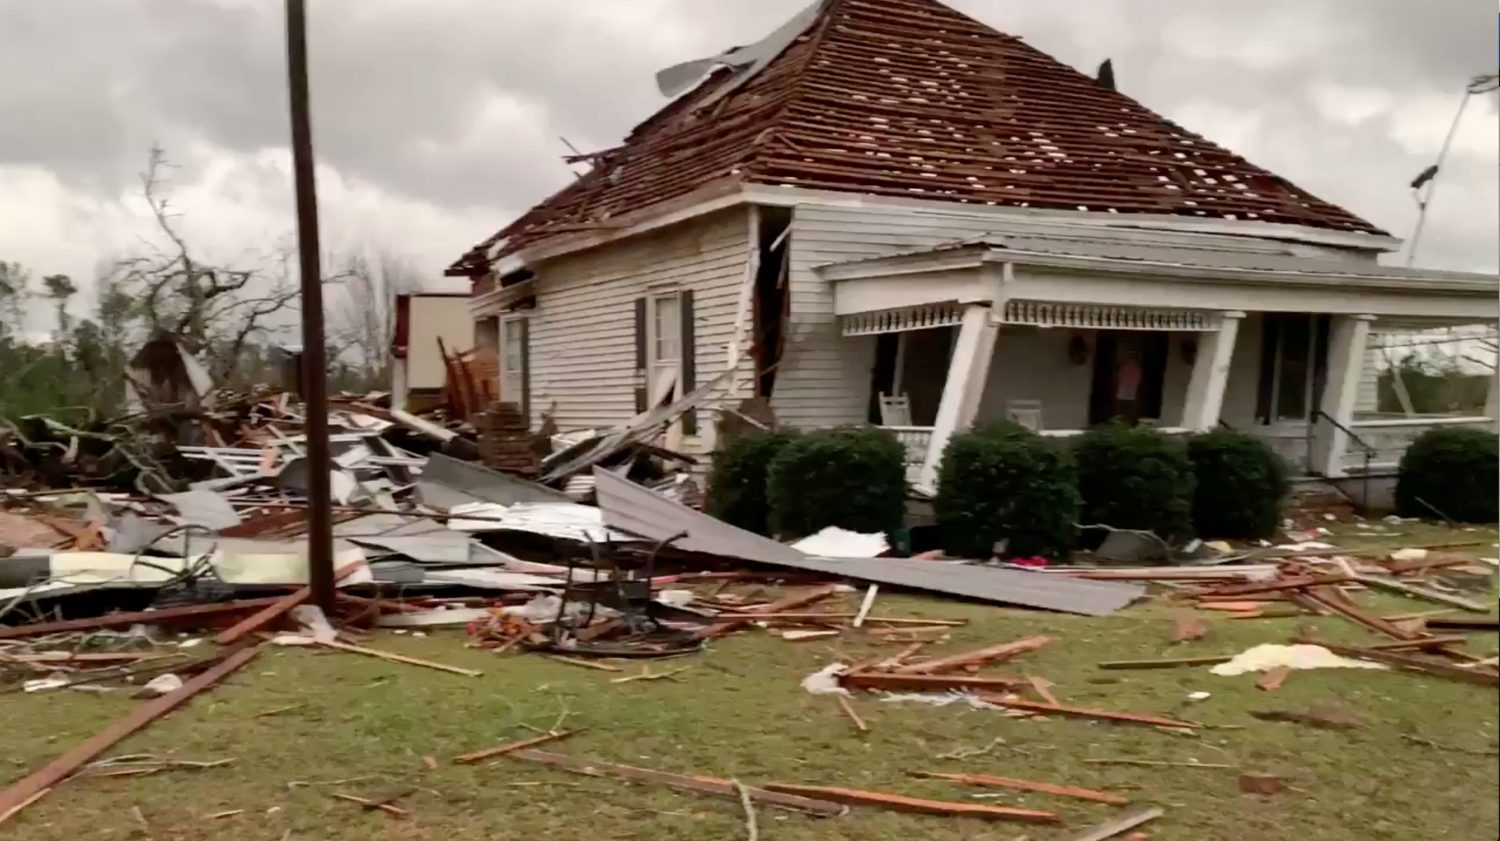 Debris and a damaged house seen following a tornado in Beauregard, Alabama, U.S. in this March 3, 2019 still image obtained from social media video. SCOTT FILLMER /via REUTERS